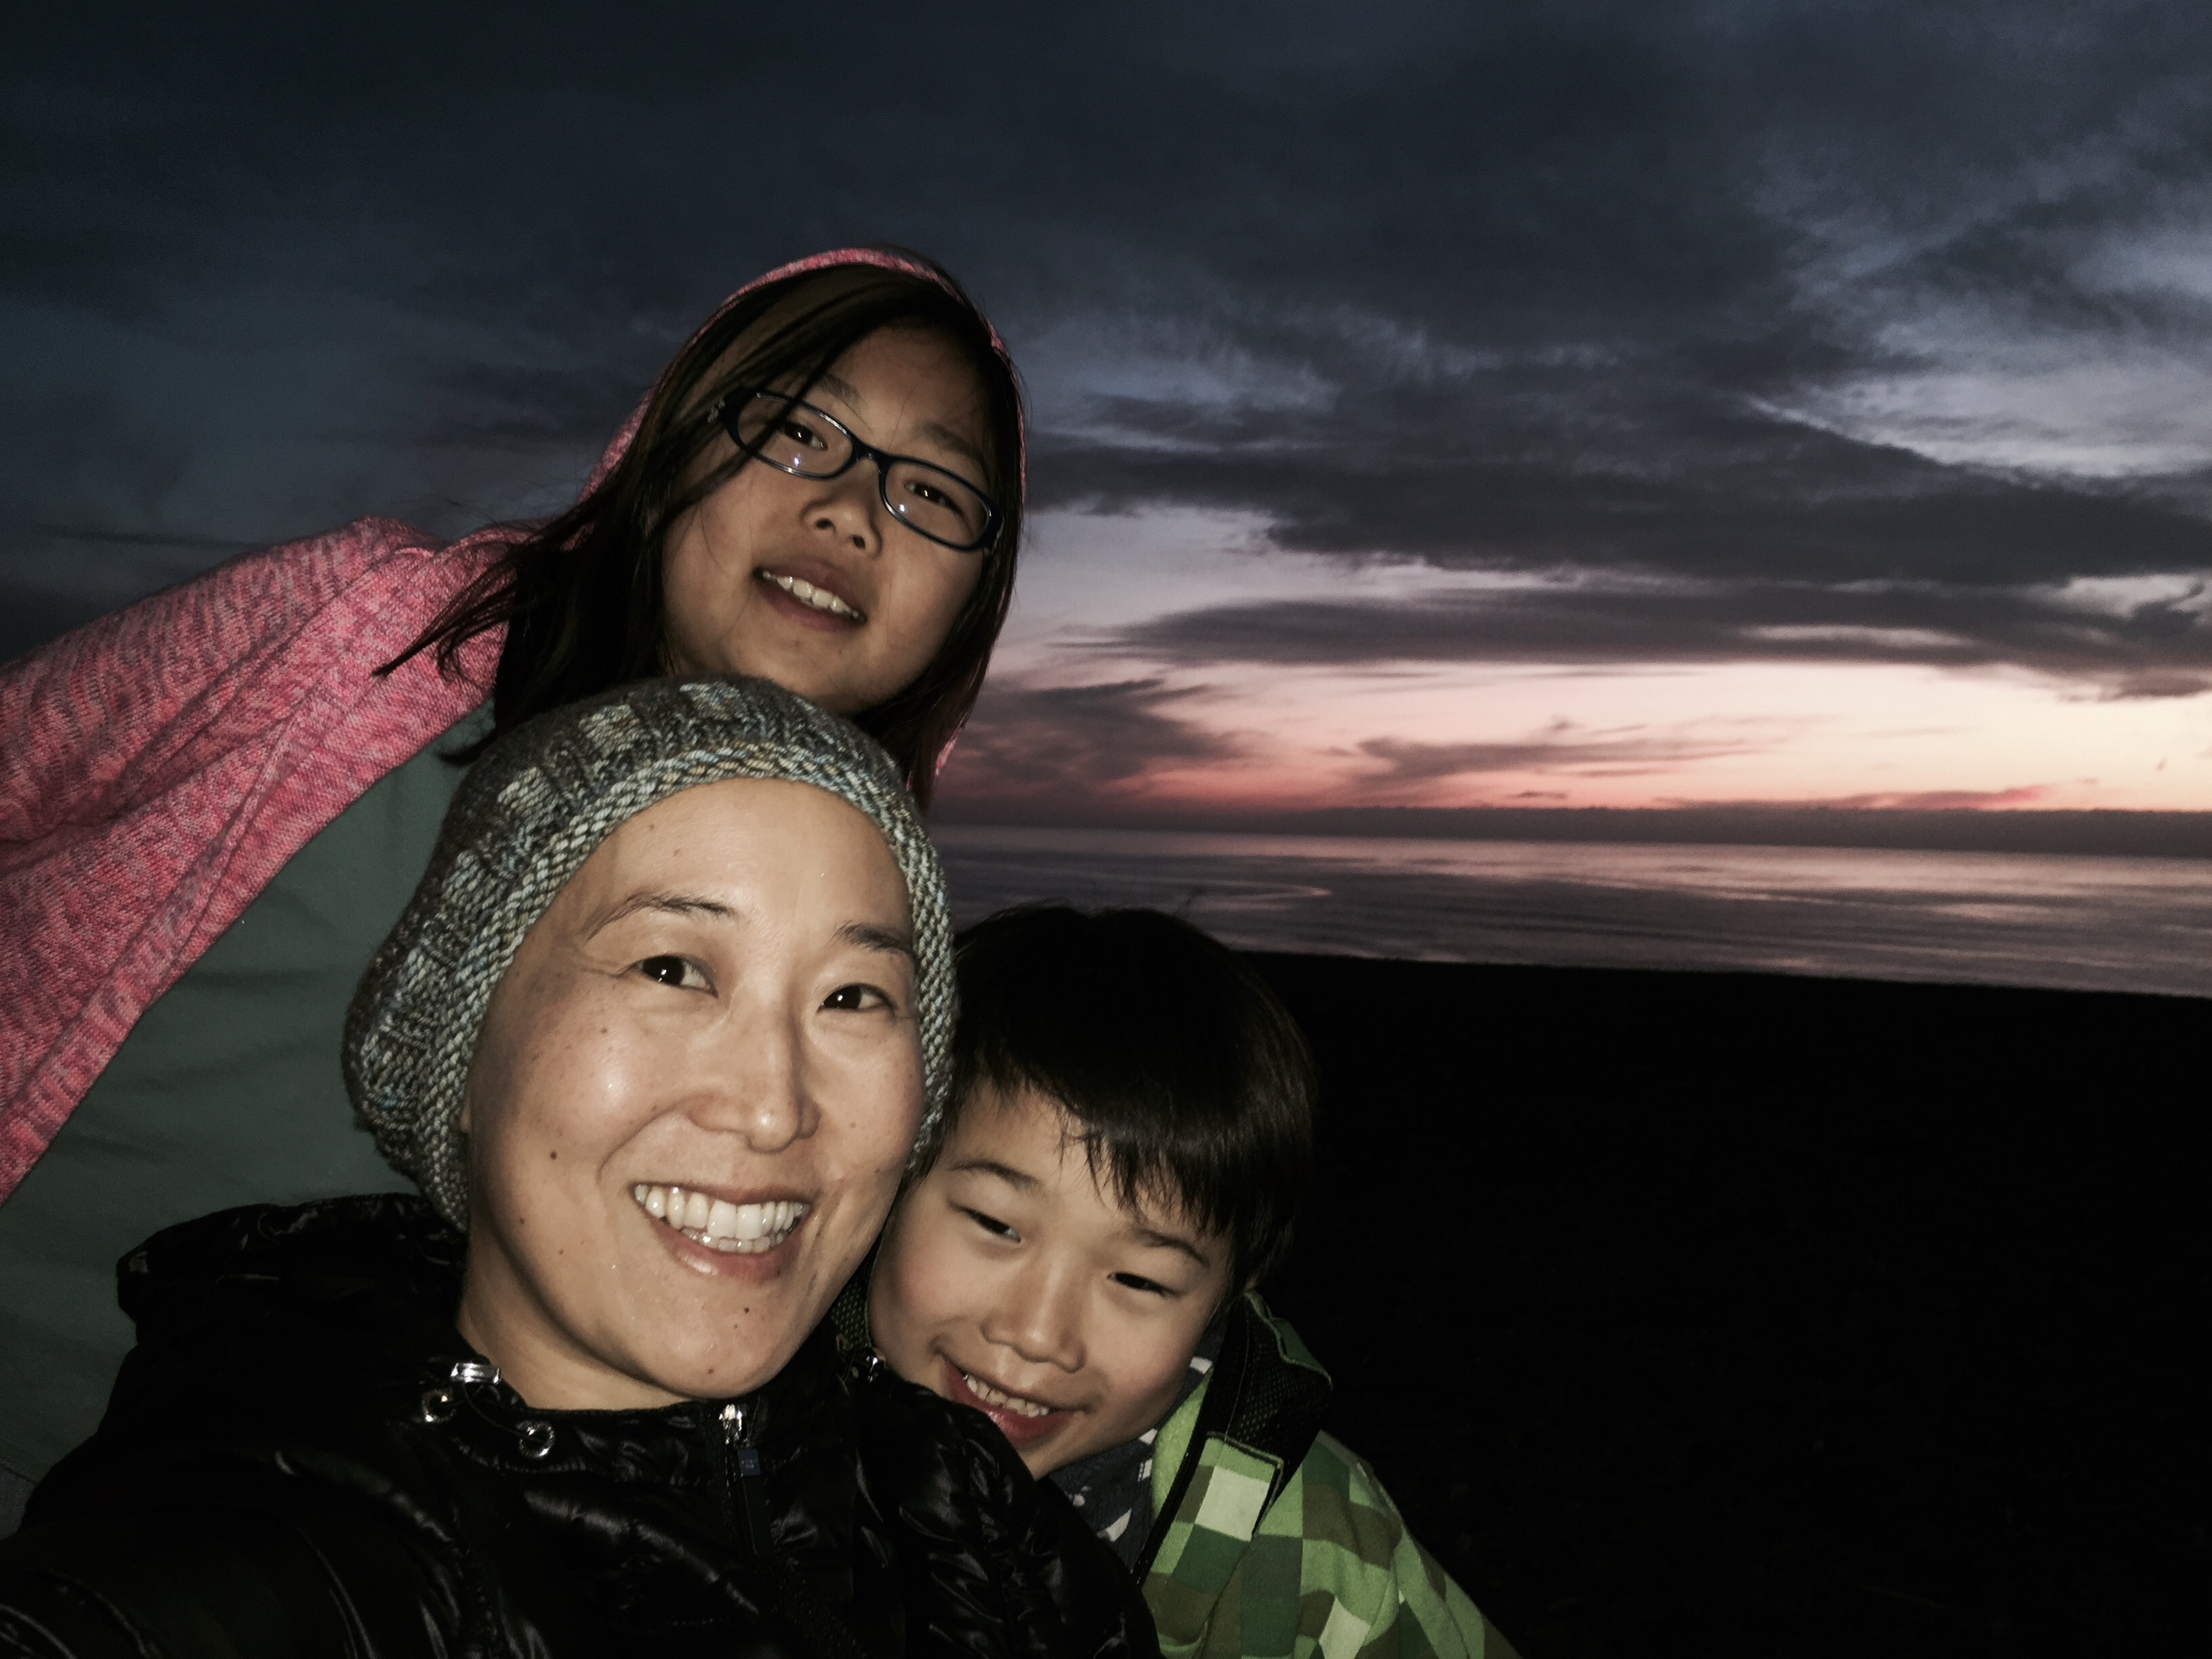 with Zoë and Griffin at Fort Funston during sunset